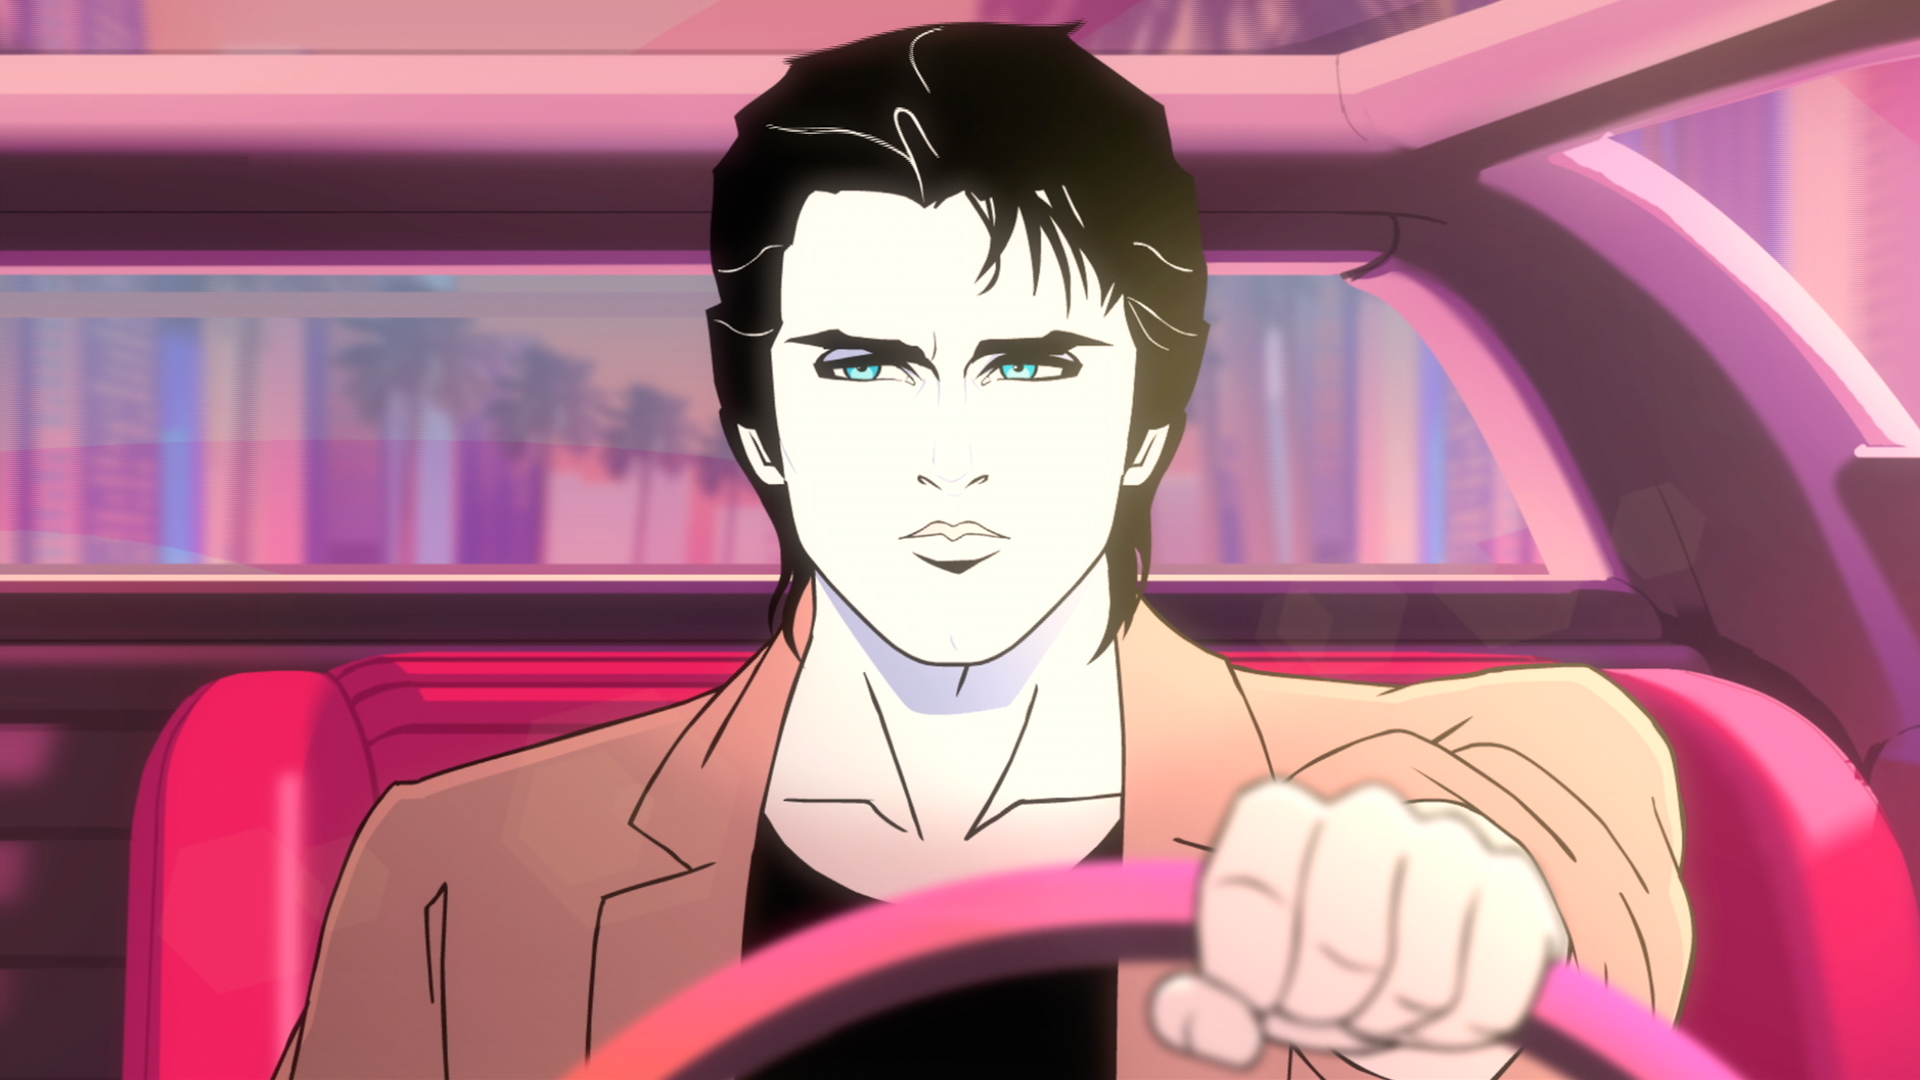 Animated Fall Wallpaper Moonbeam City Creator Scott Gairdner Reached For The